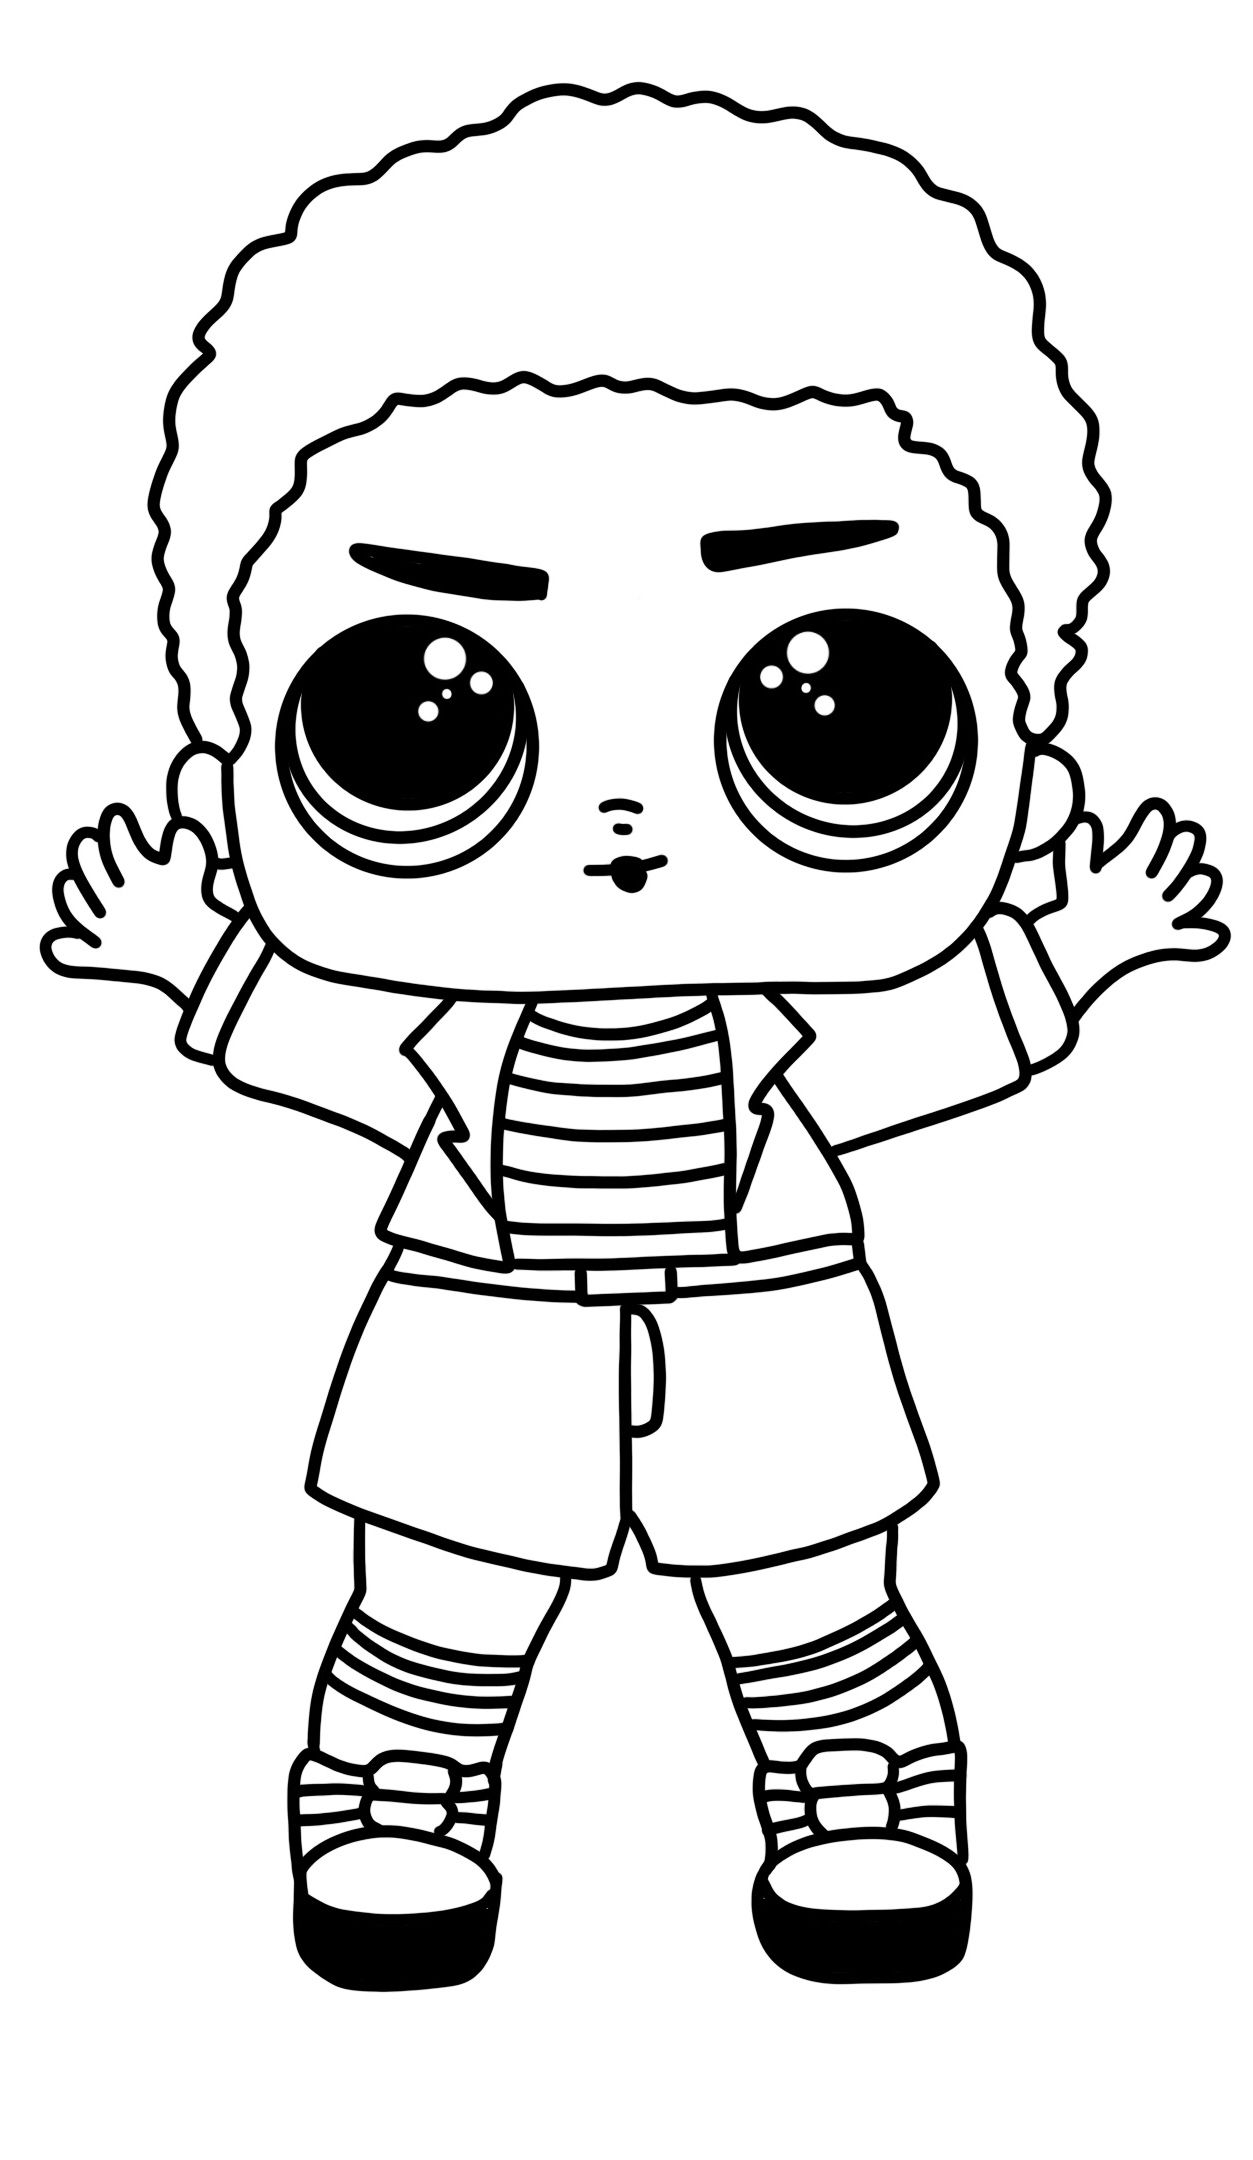 Lol 2019 Boys Coloring Pages Lol Dolls Coloring Pages For Boys Boy Coloring